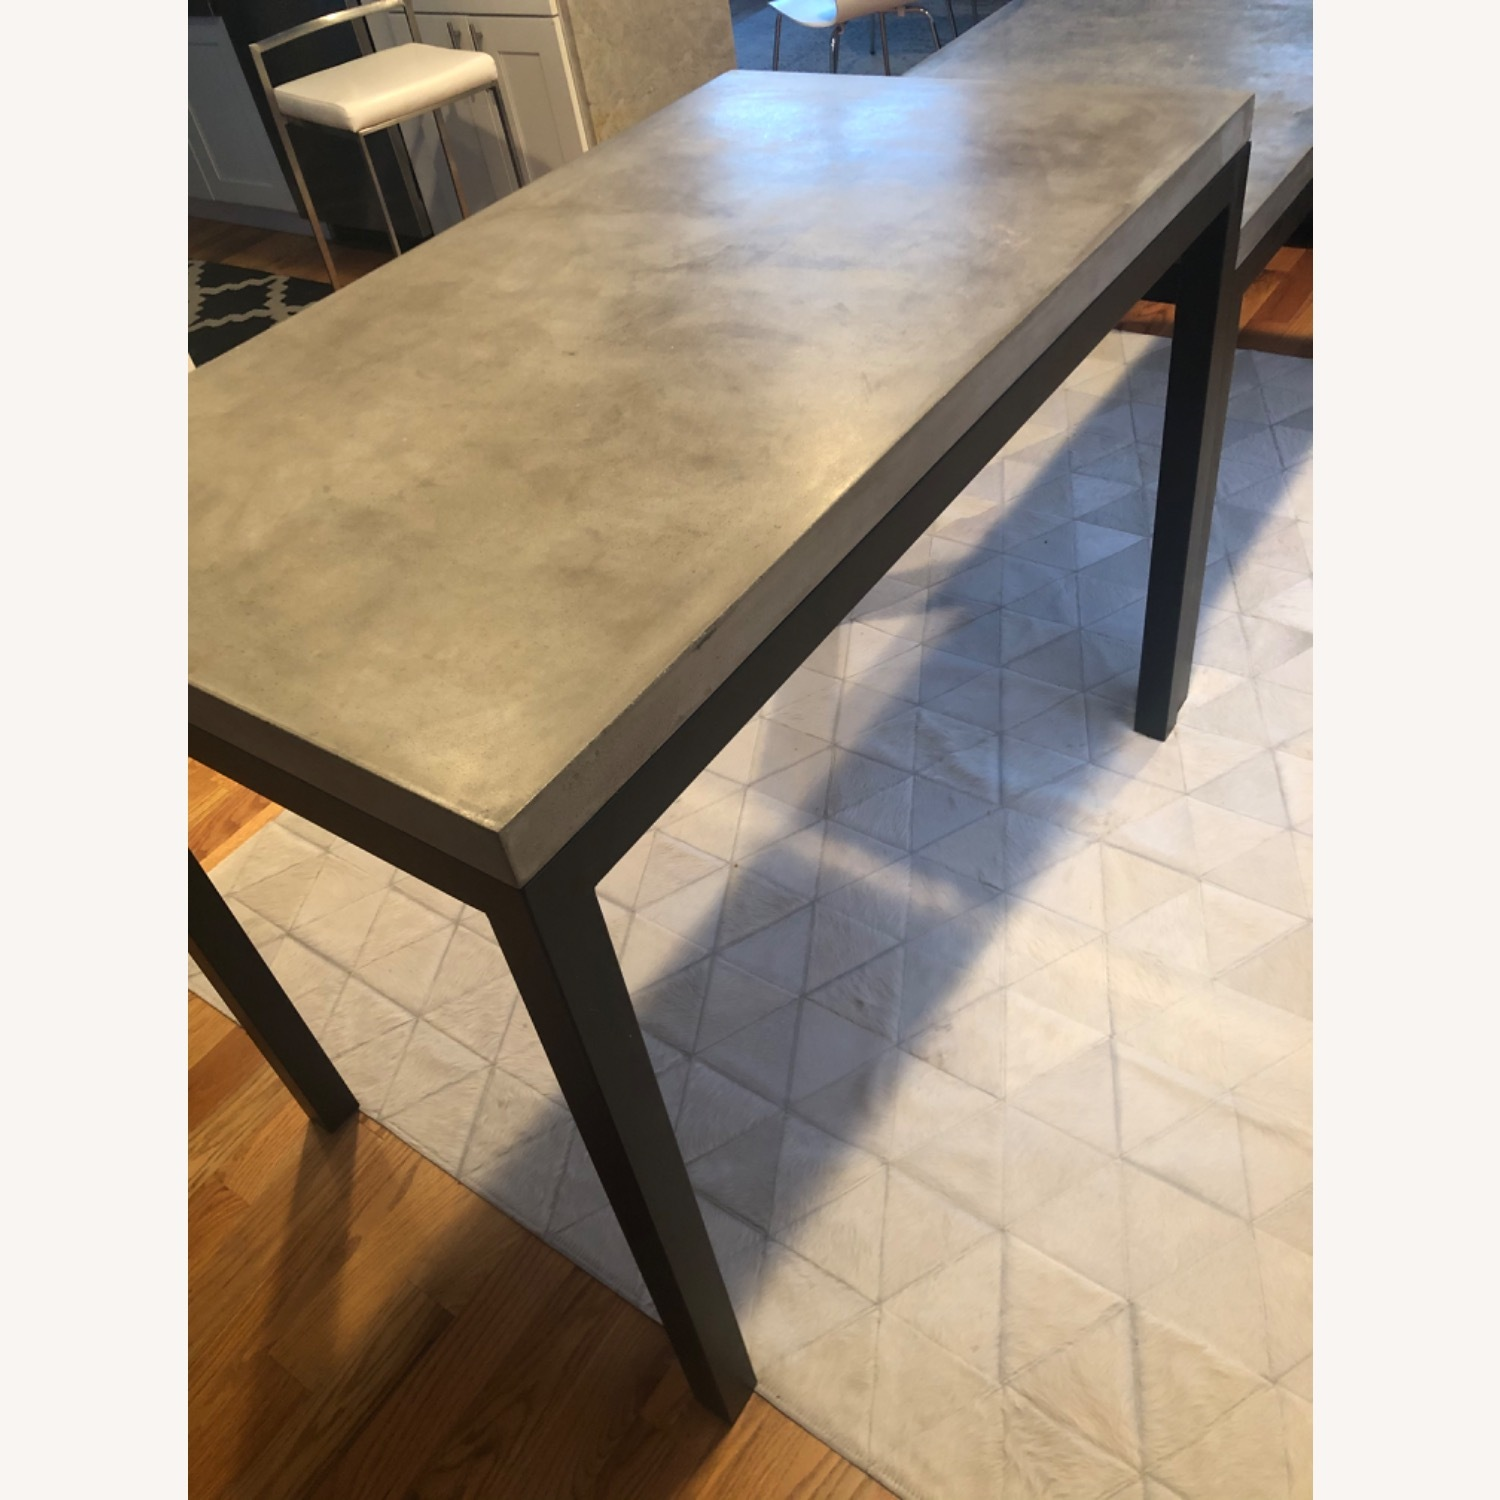 Crate & Barrel Concrete High Dining Table - image-4